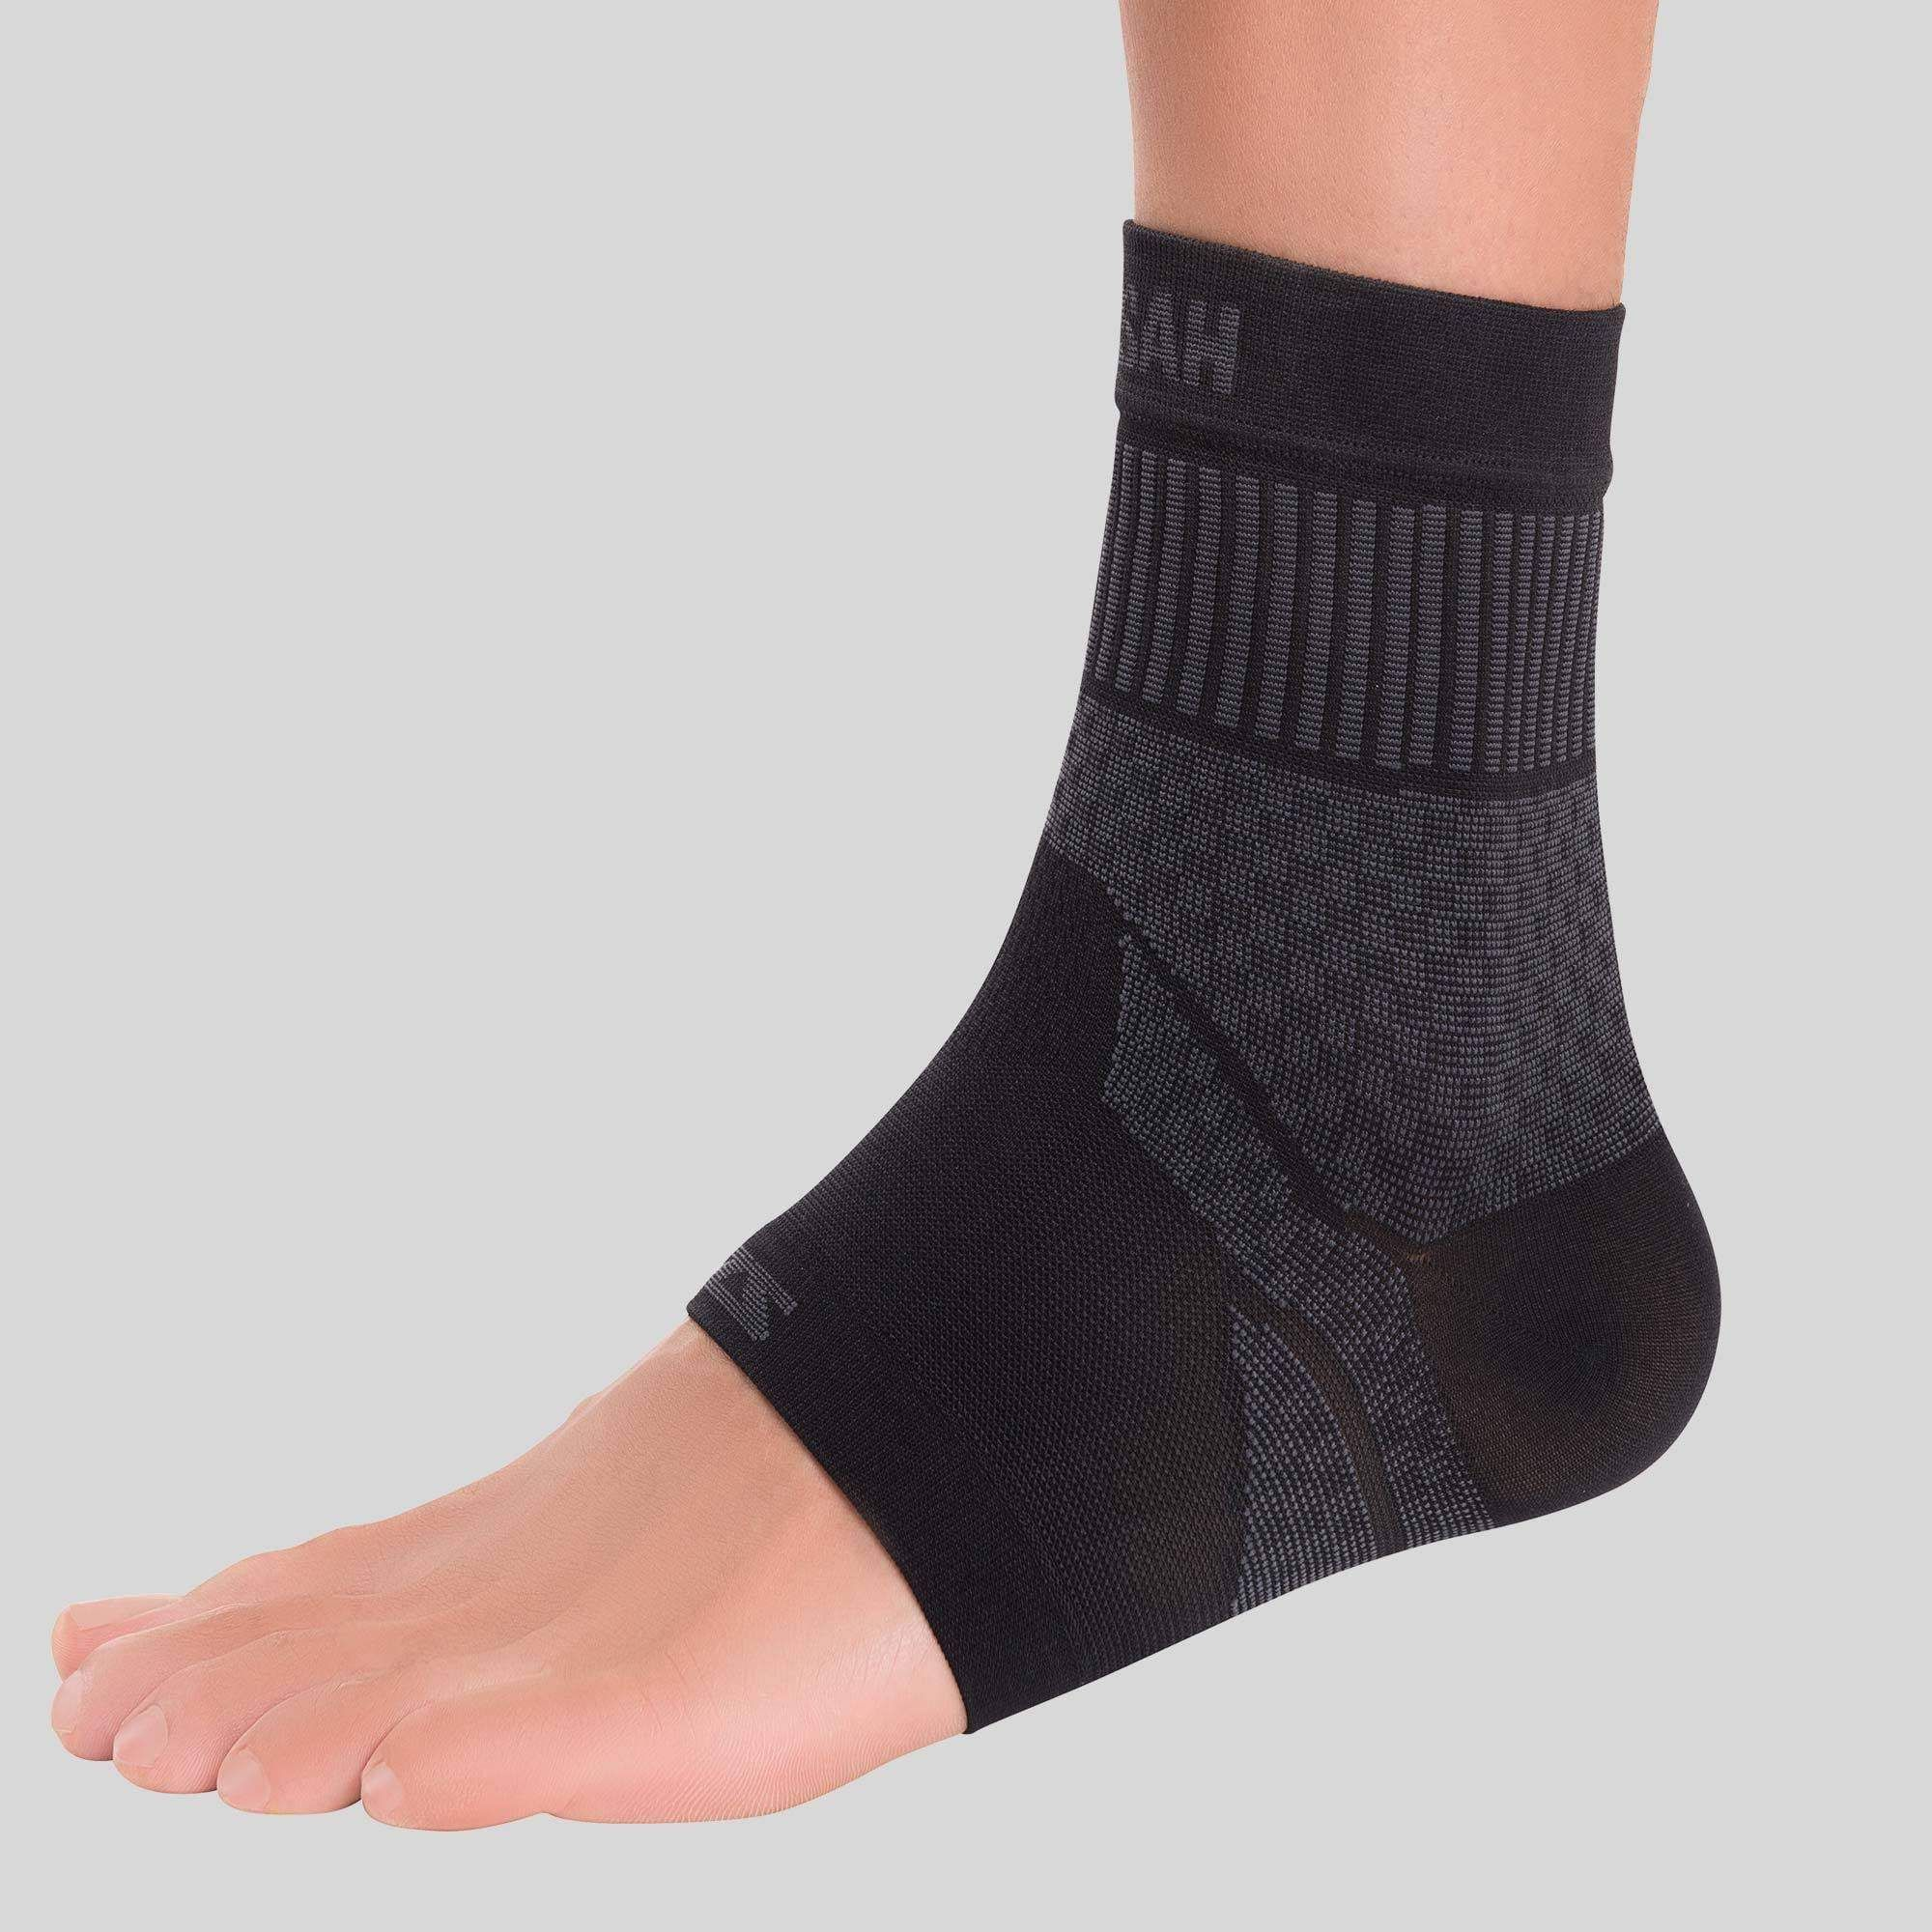 Compression Ankle Support In 2020 Ankle Braces Ankle Support Ankle Injury